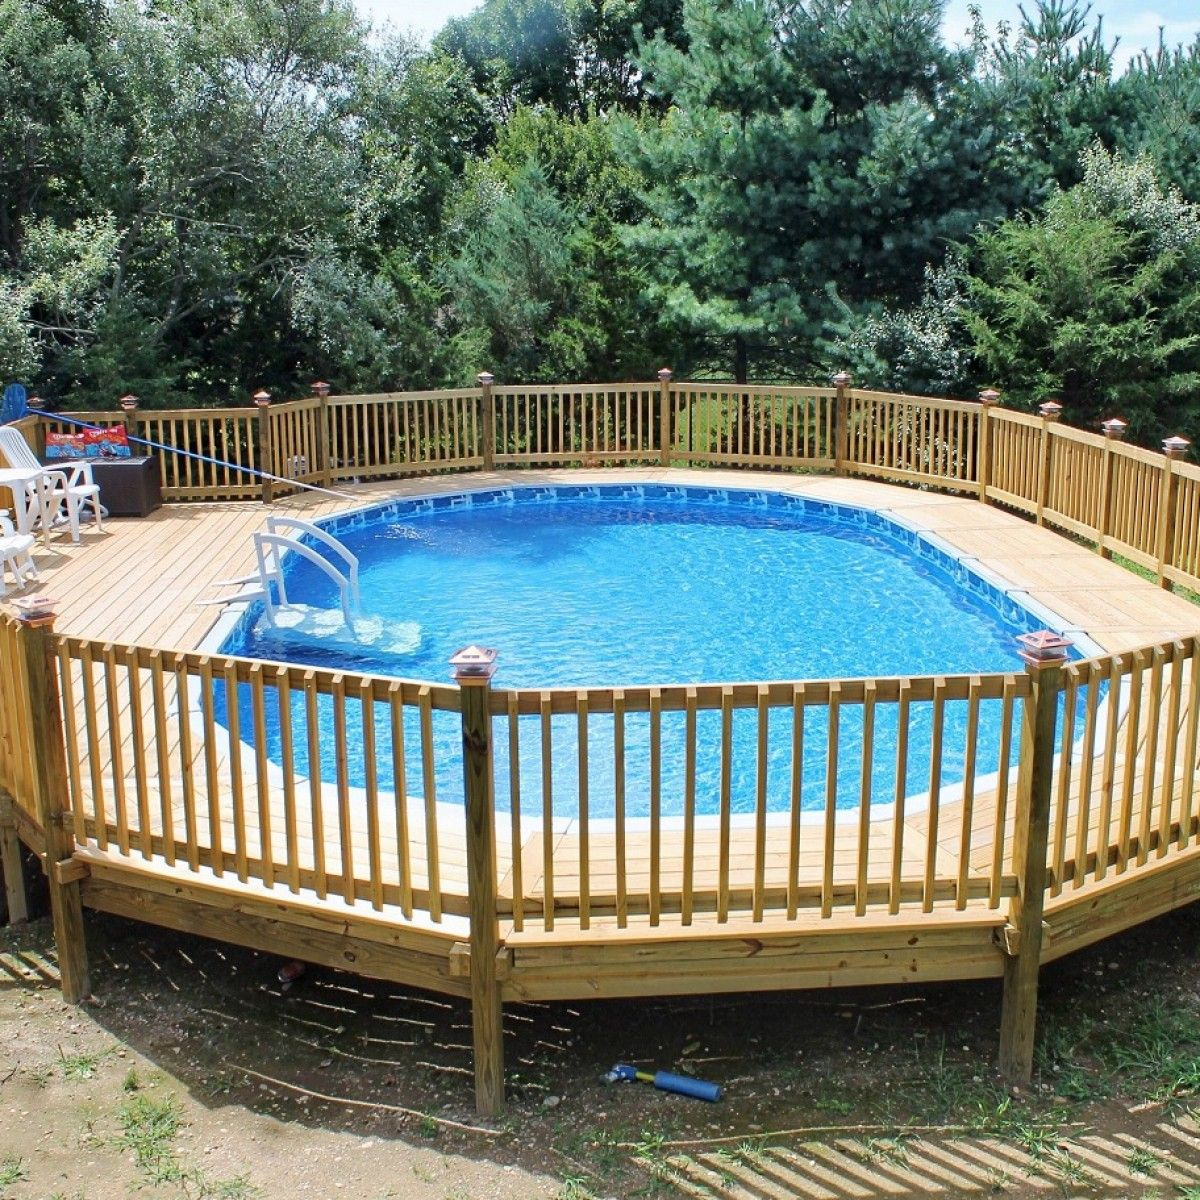 Swiming Pools Above Ground Pool Decks With Wooden Fence